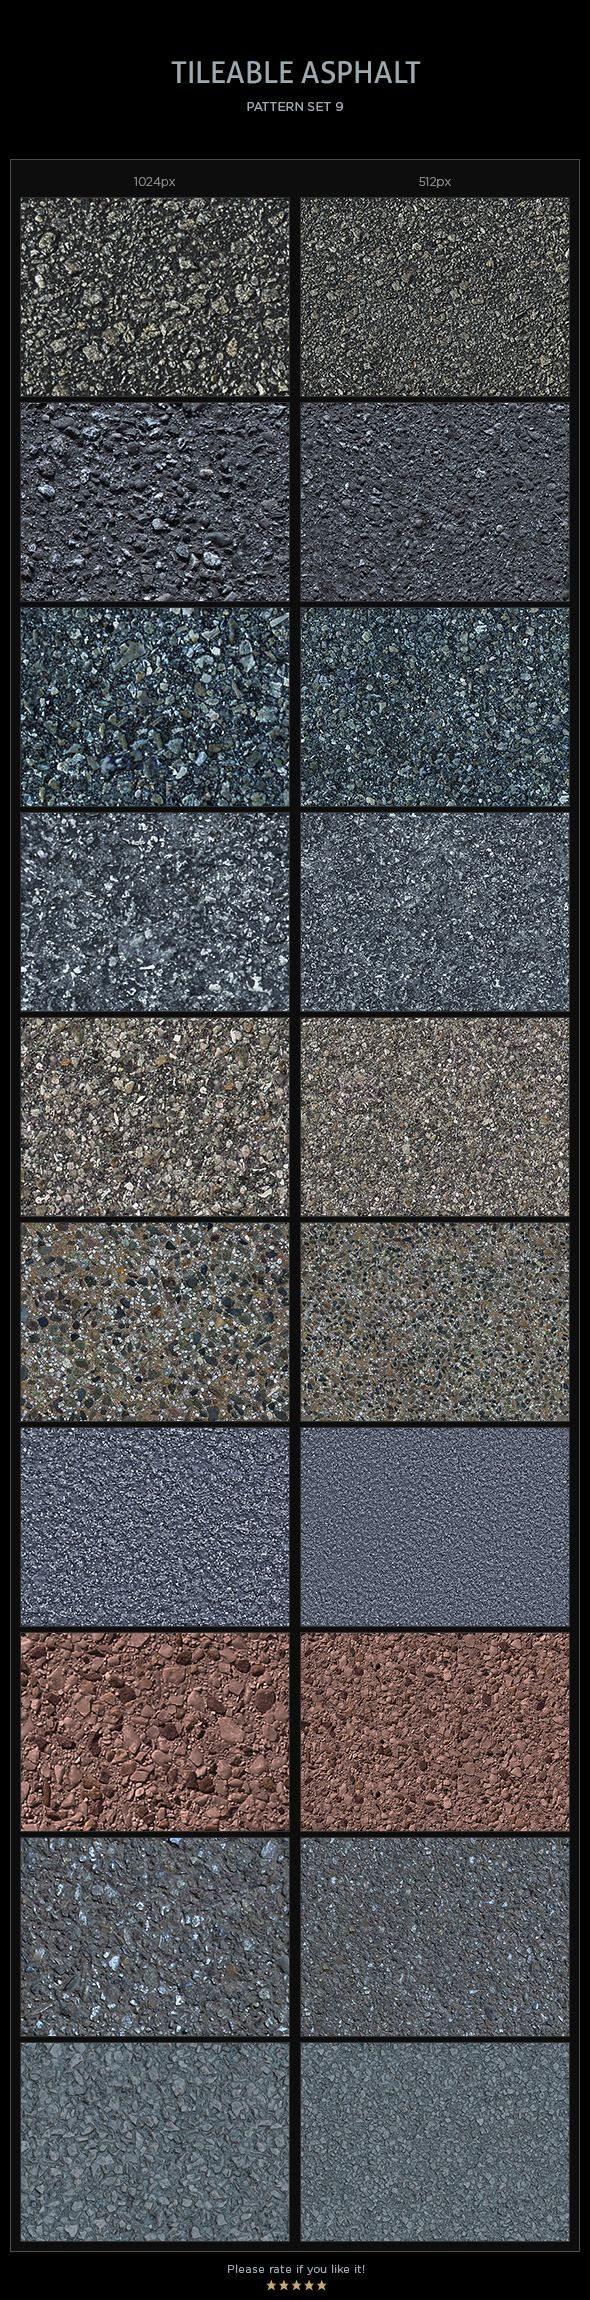 10 Tileable Asphalt Textures/Patterns by SigerG This pack comes with 20 seamless Asphalt patterns.1 .PAT file with 20 Asphalt patterns (1024px, 512px) 20 .JPG files containing th